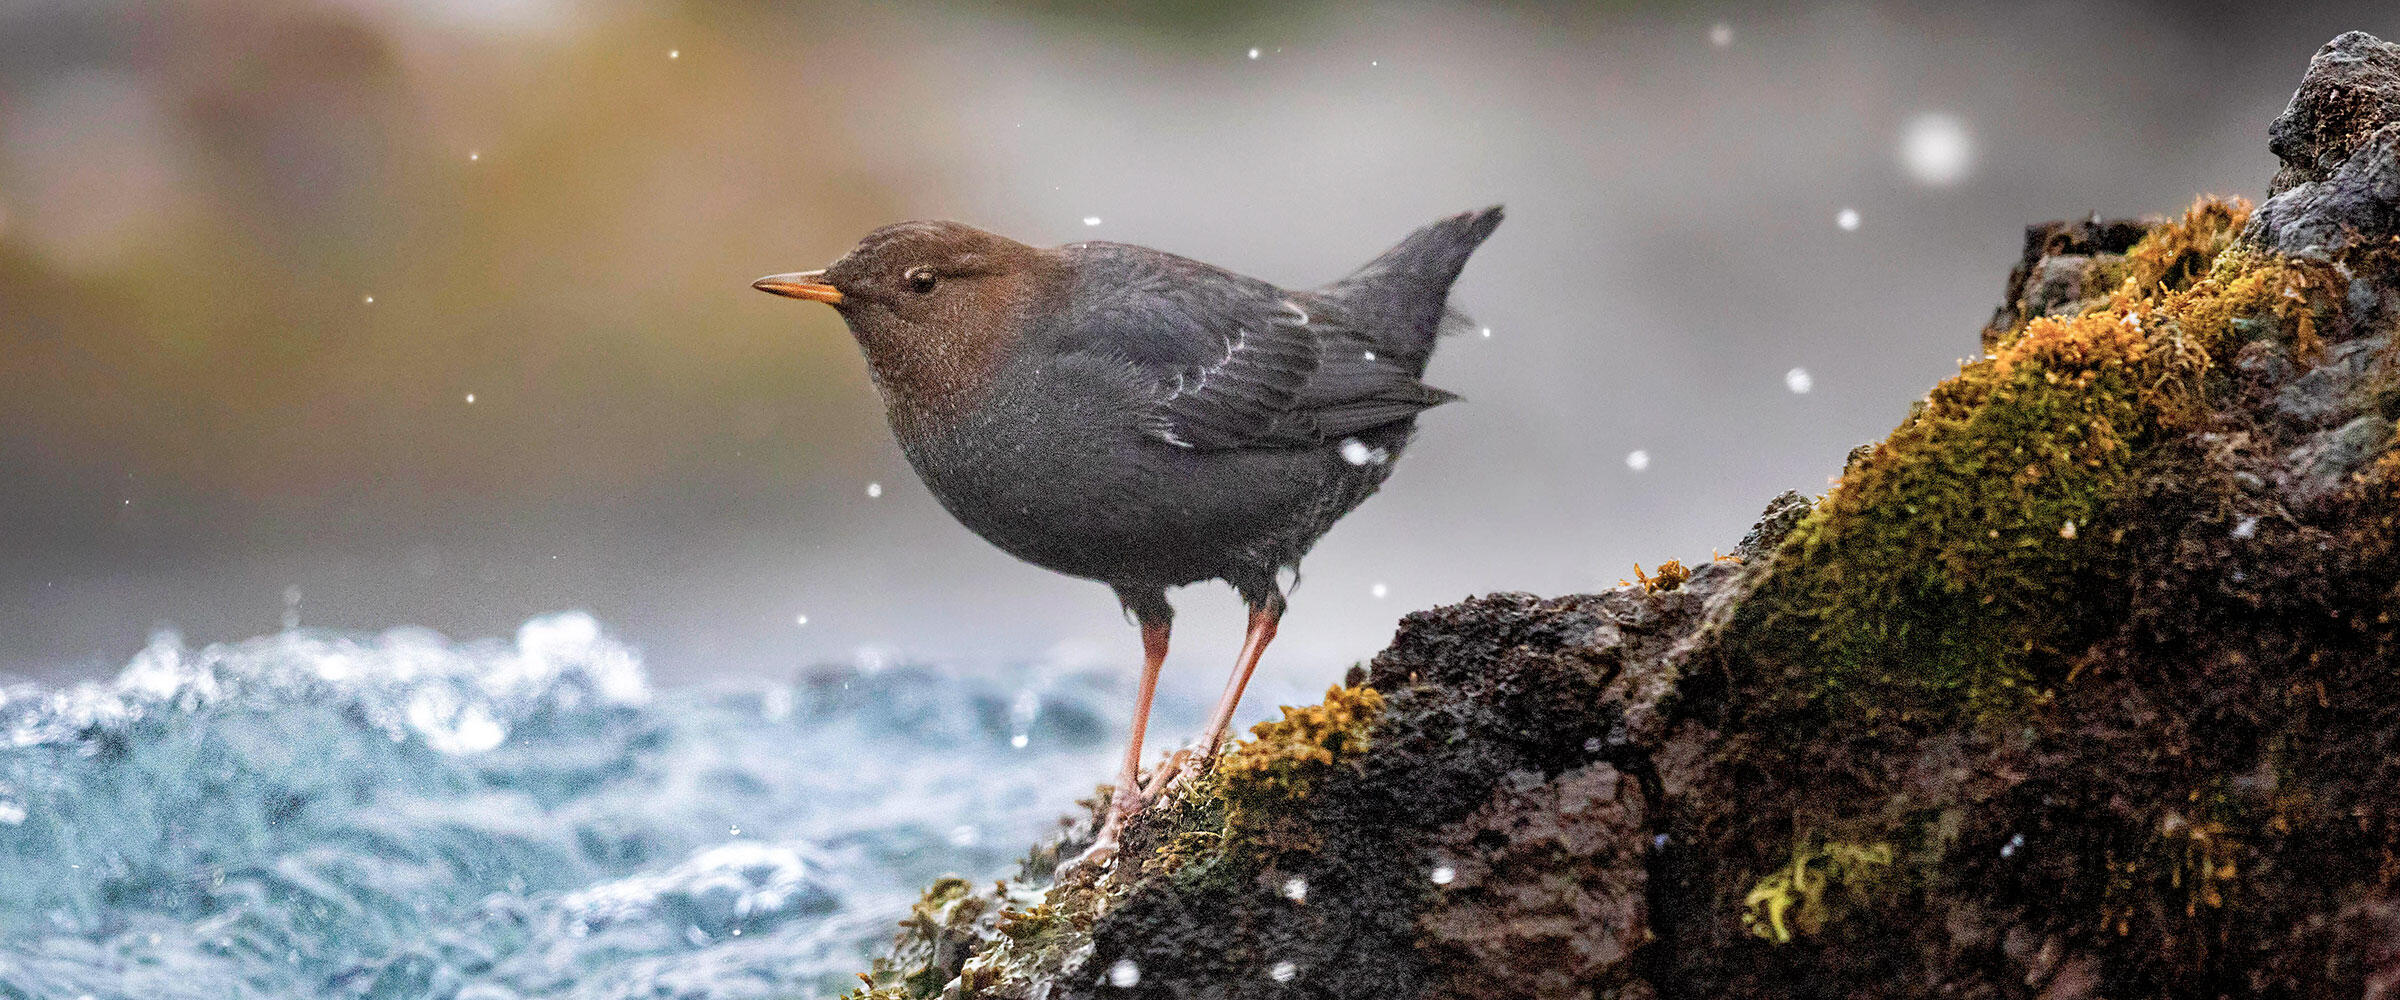 An American Dipper stands on a rock in a stream.